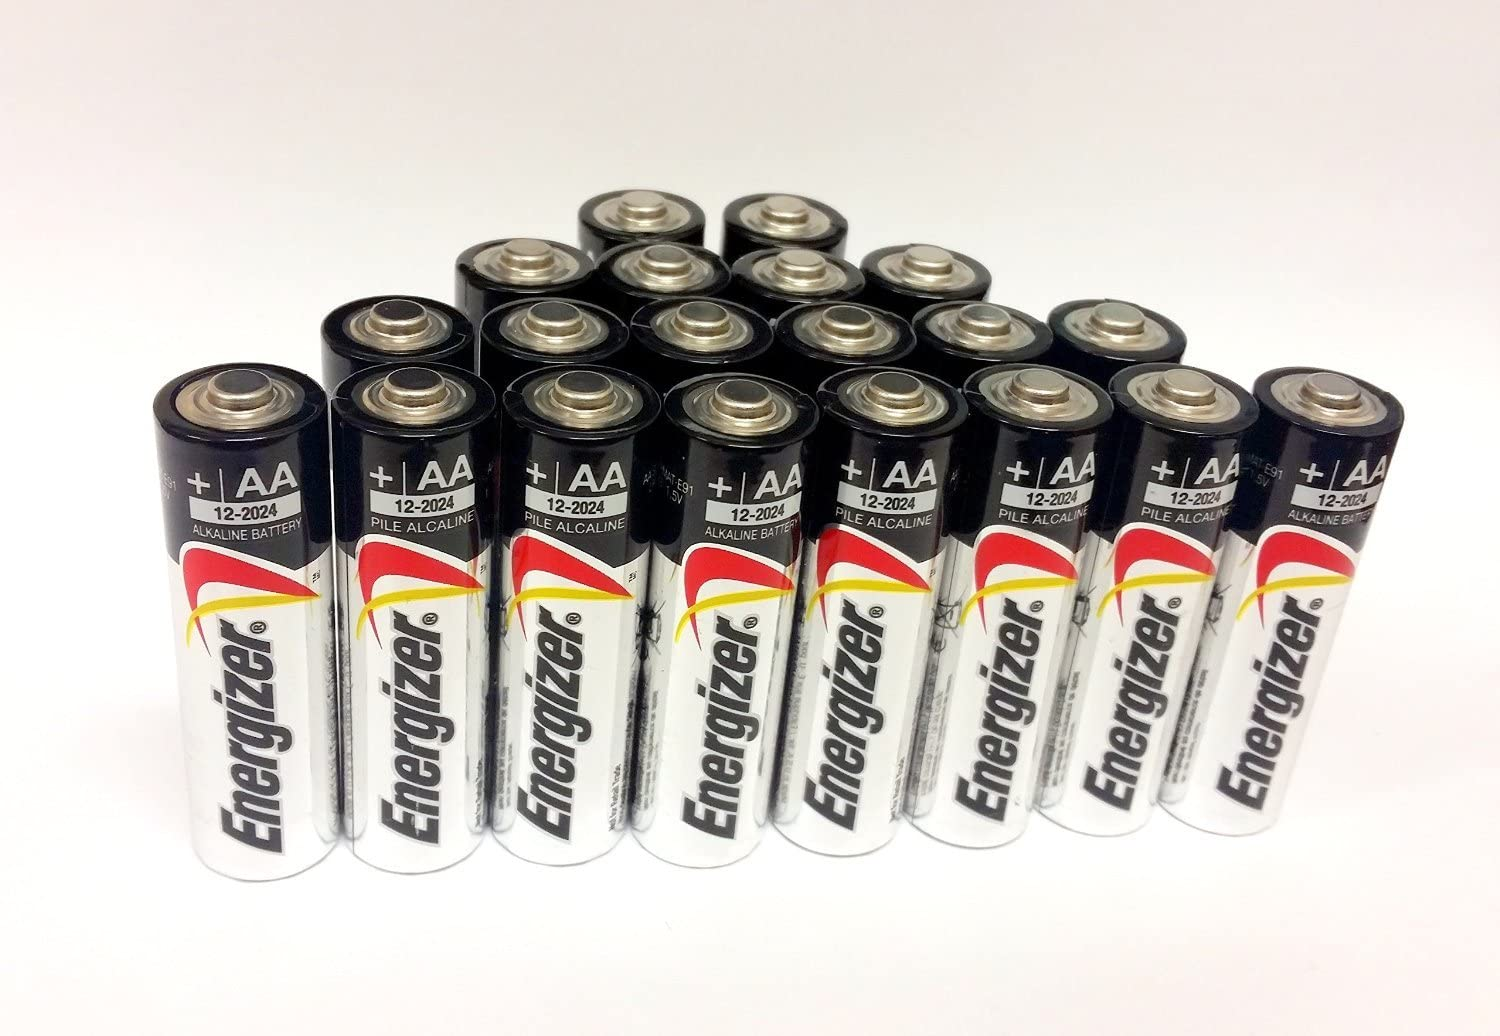 Expiration 12//2024 or later Energizer AA Max Alkaline E91 Batteries Made in USA 20 count